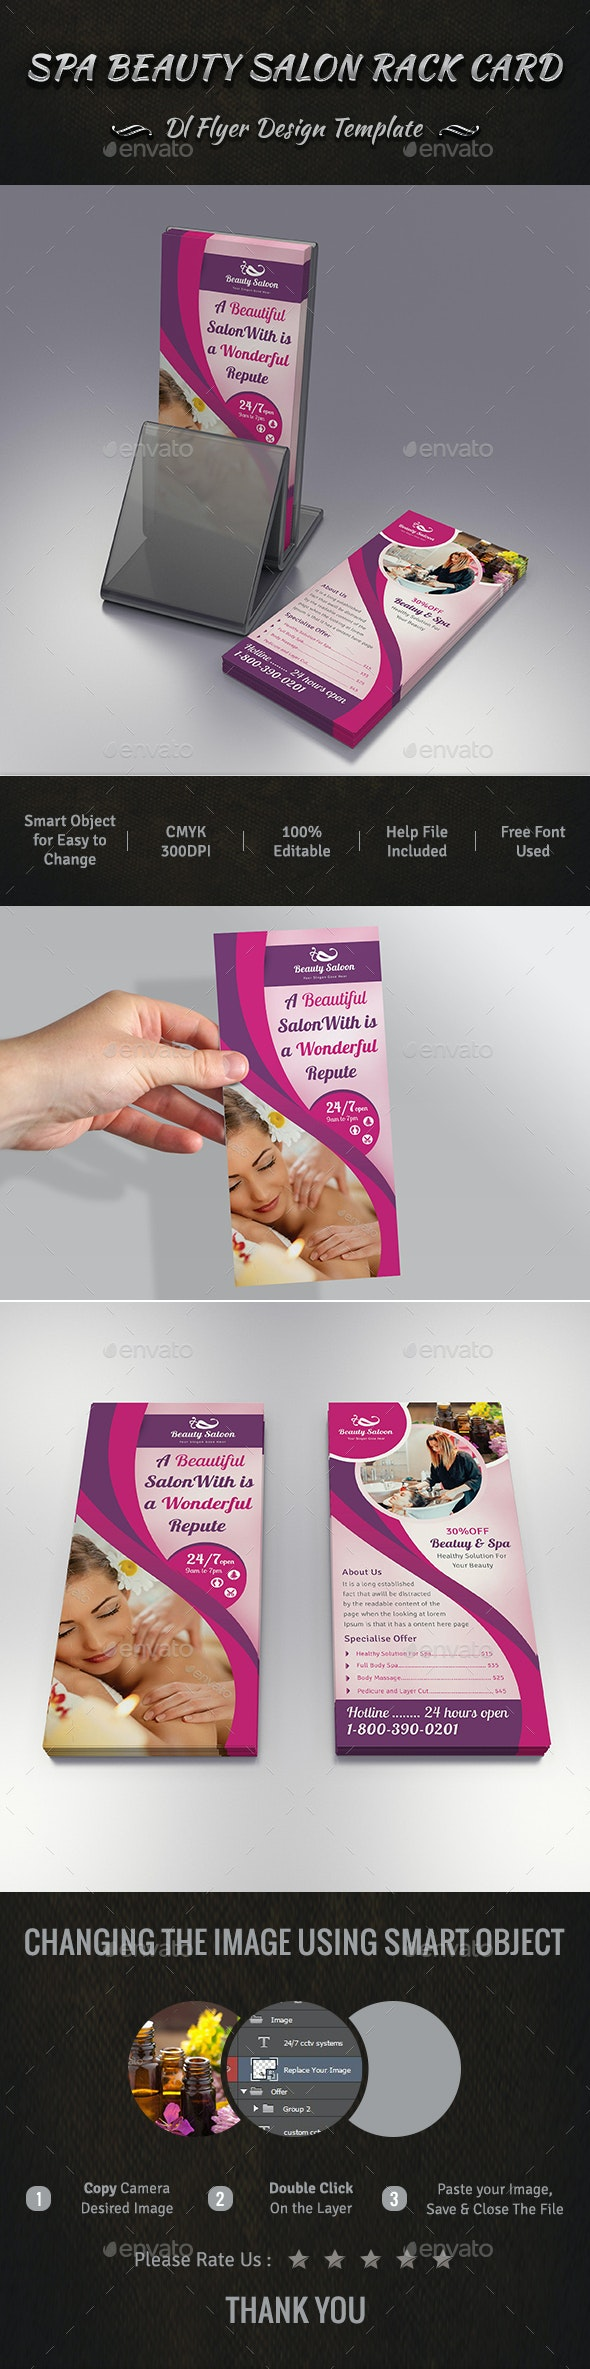 Spa Beauty Salon Rack Card DL Flyer Design - Commerce Flyers